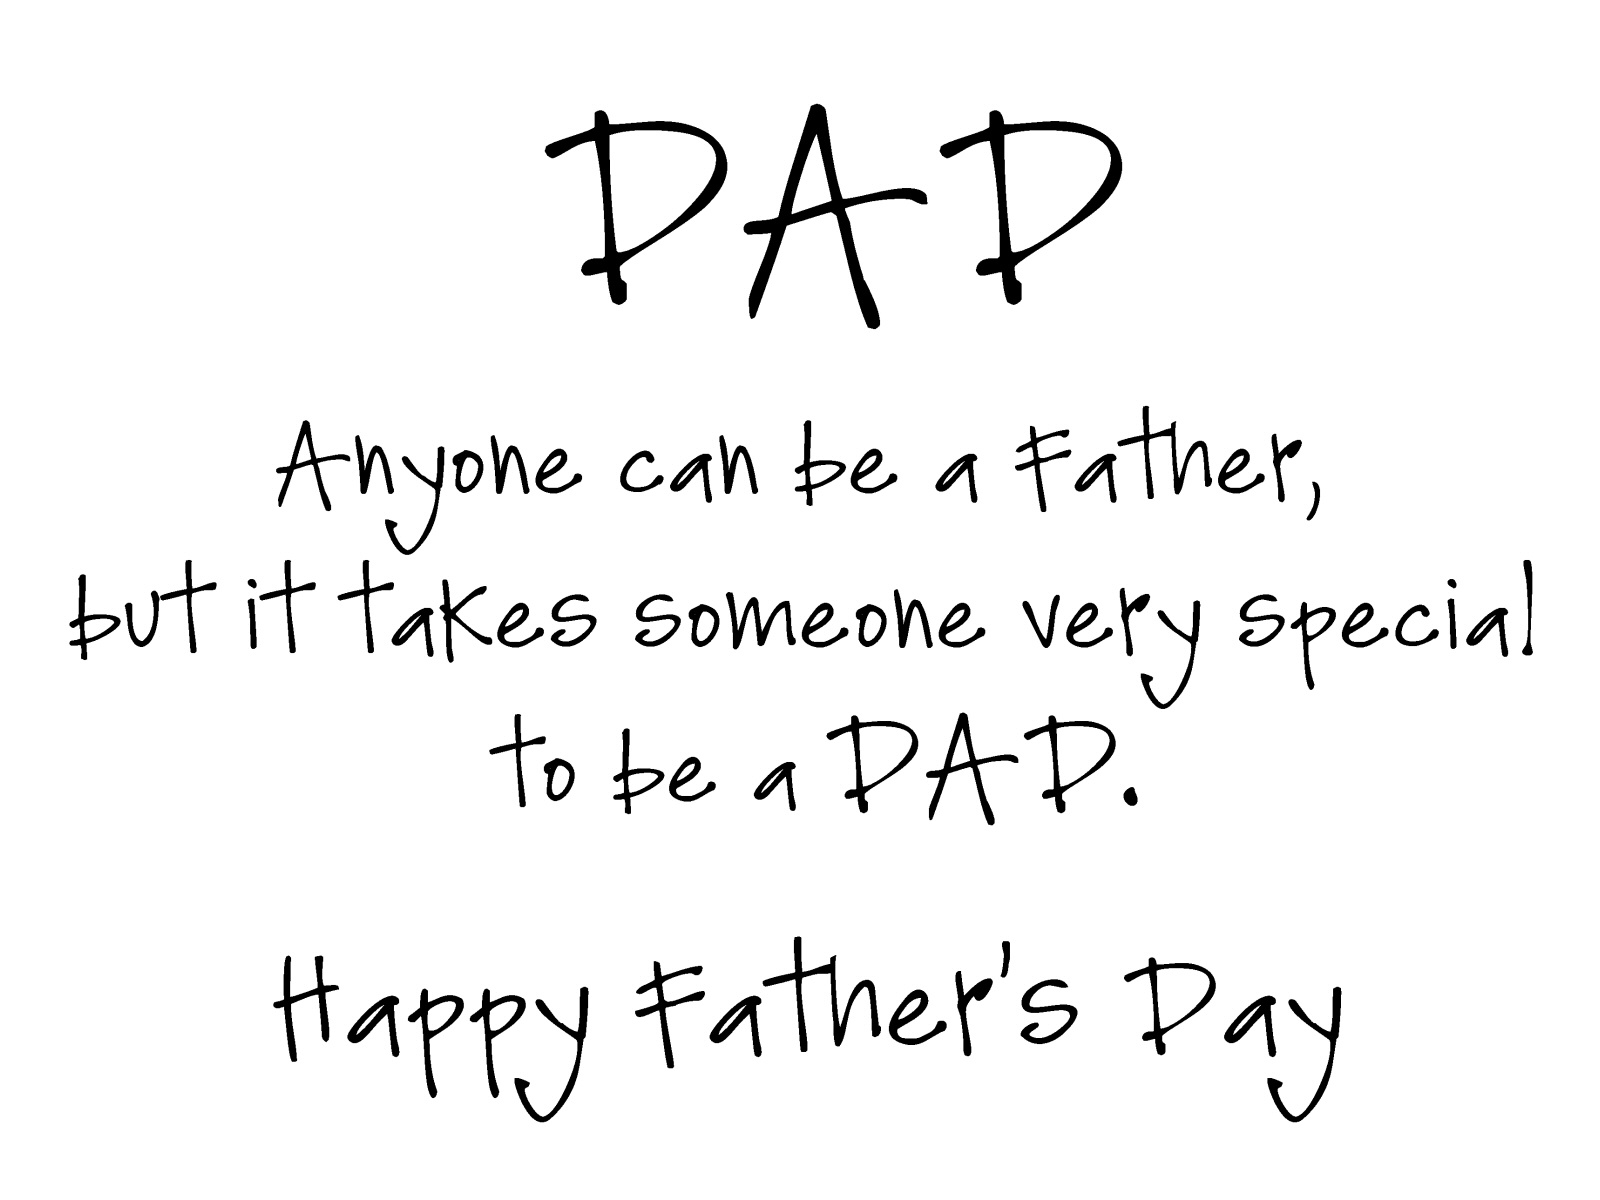 Image of: Opportunity Cah Be It Someoho Vex Onelinefuncom Quotes About Smart Fathers 40 Quotes